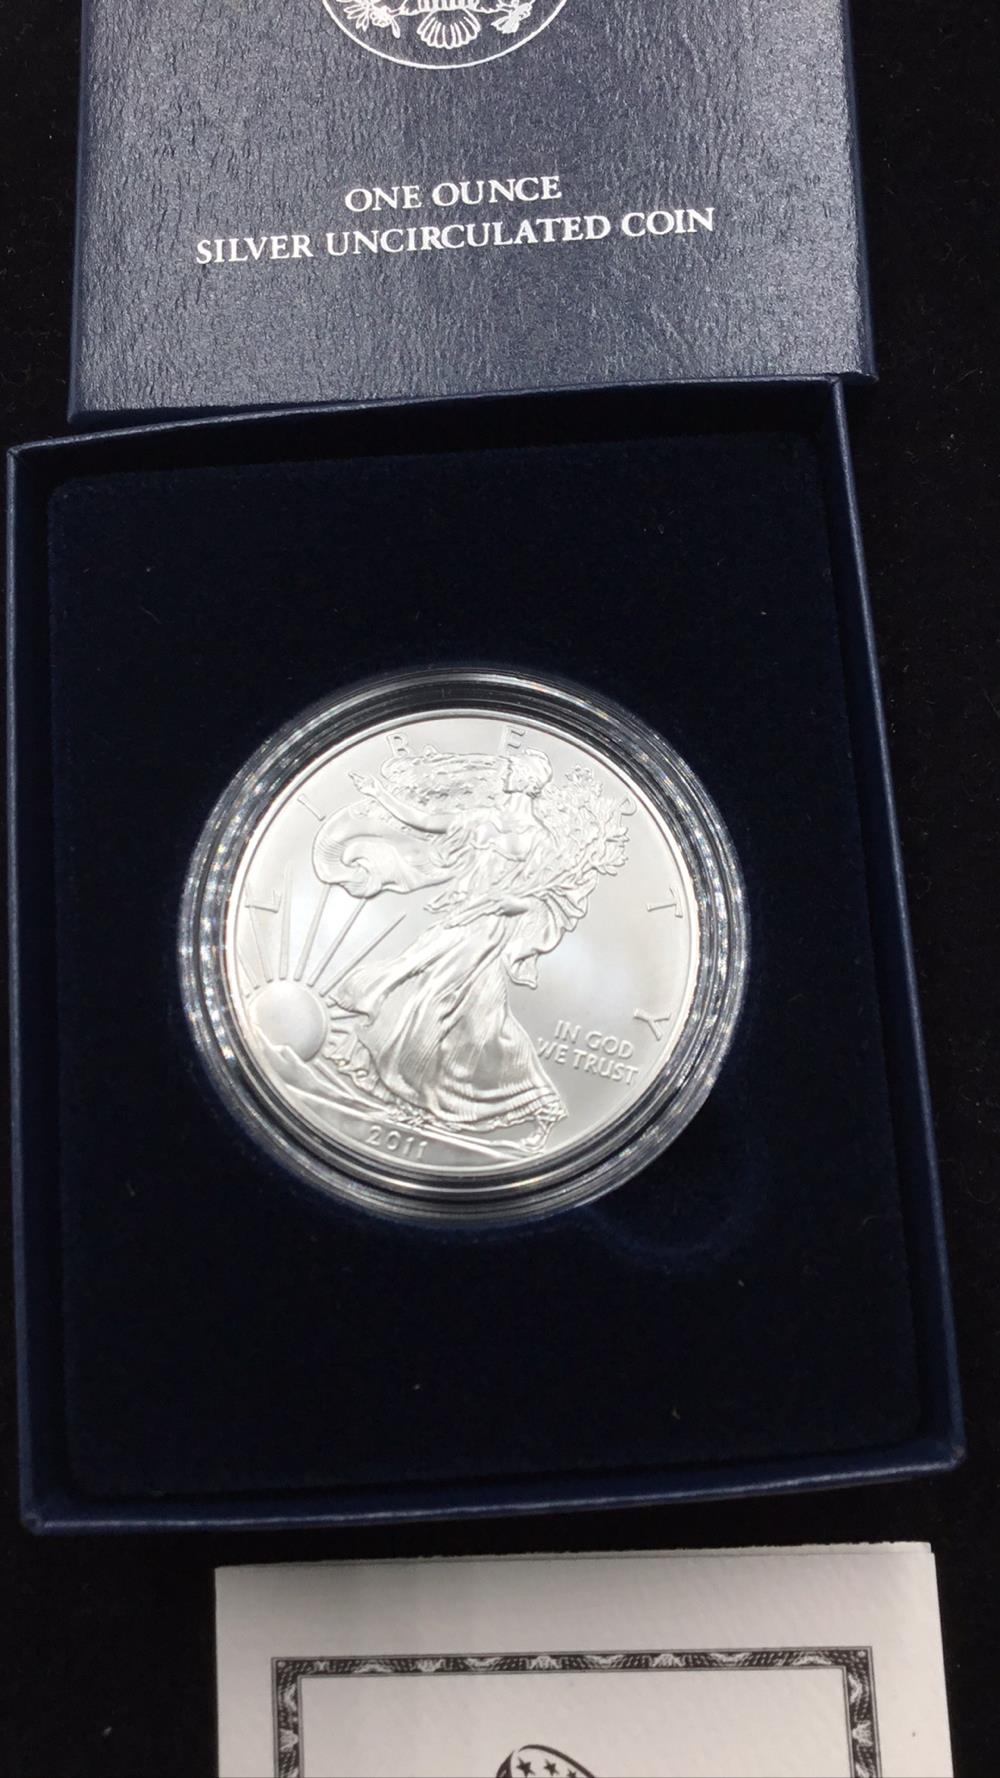 Lot 102: United states mint American eagle 1 ounce silver